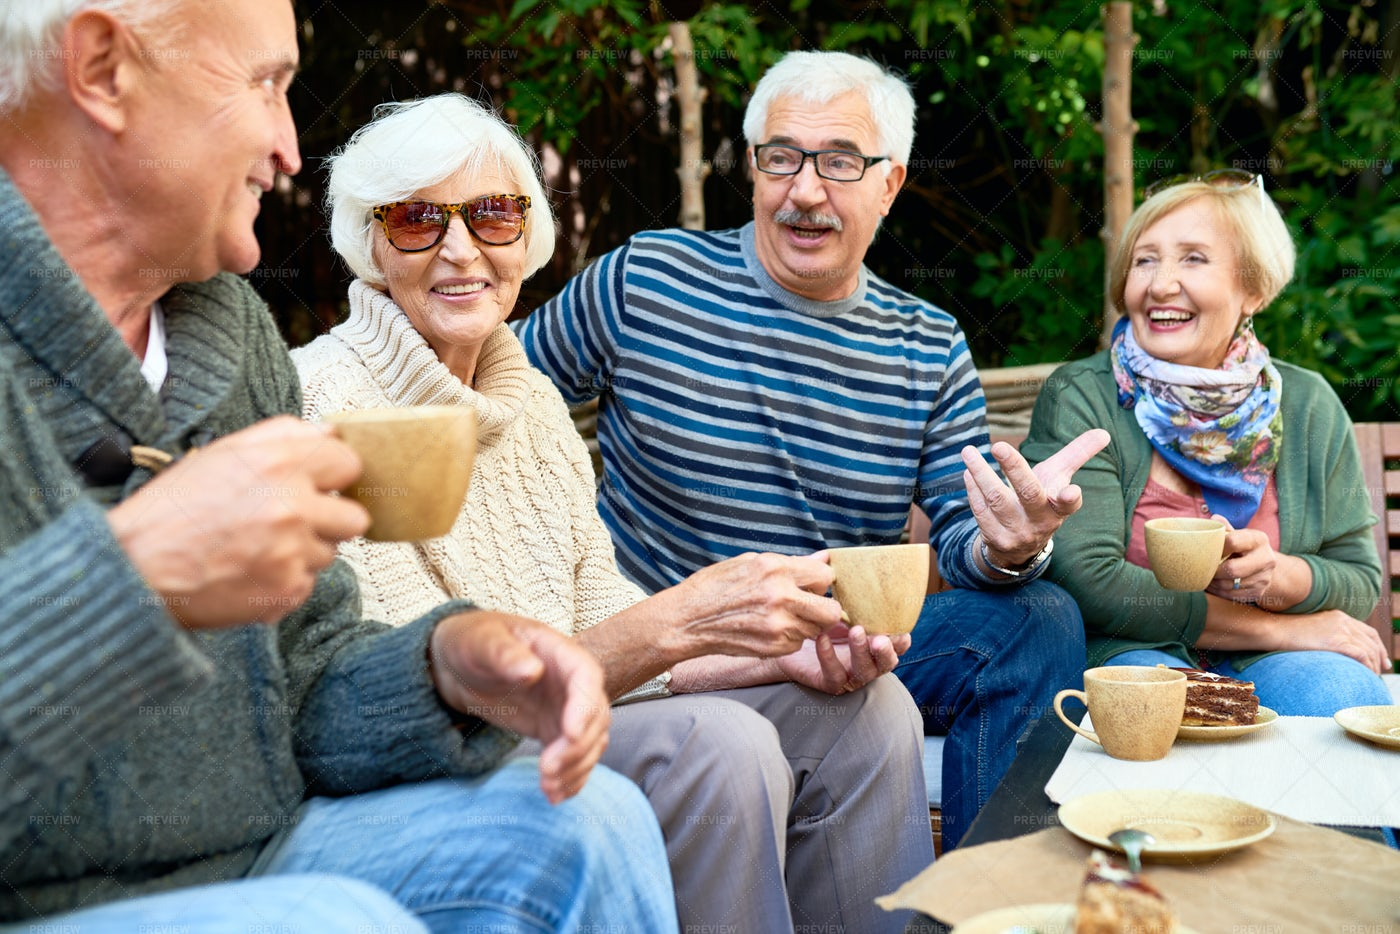 Pleasant Moments Of Friendship: Stock Photos